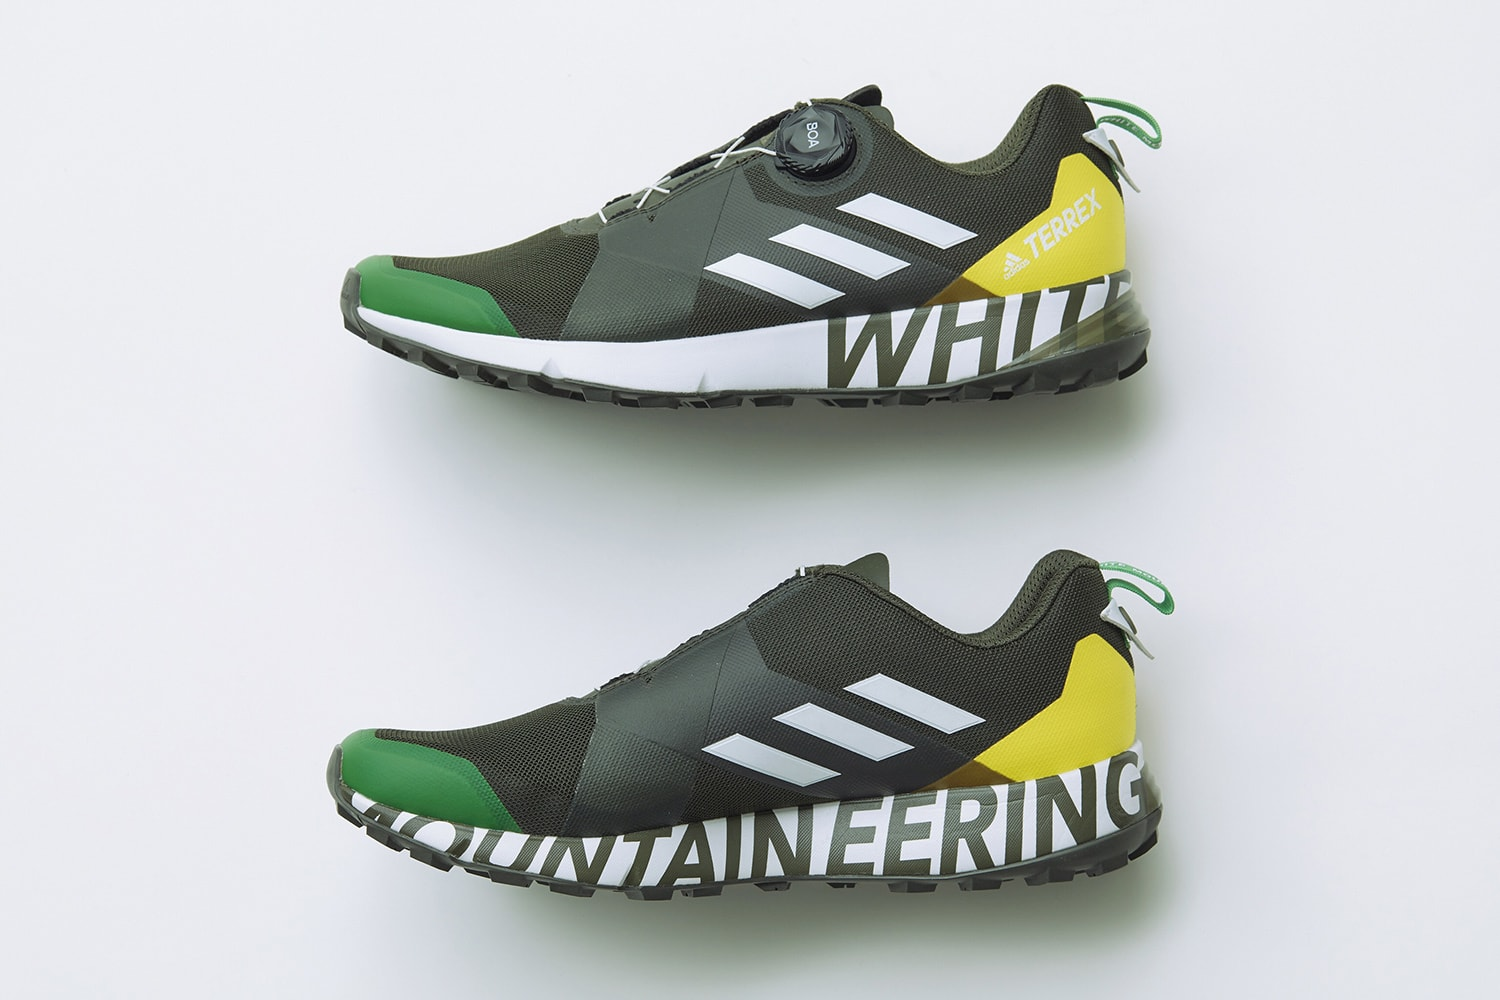 046e5634068a adidas TERREX x White Mountaineering New Two Boa Colourways